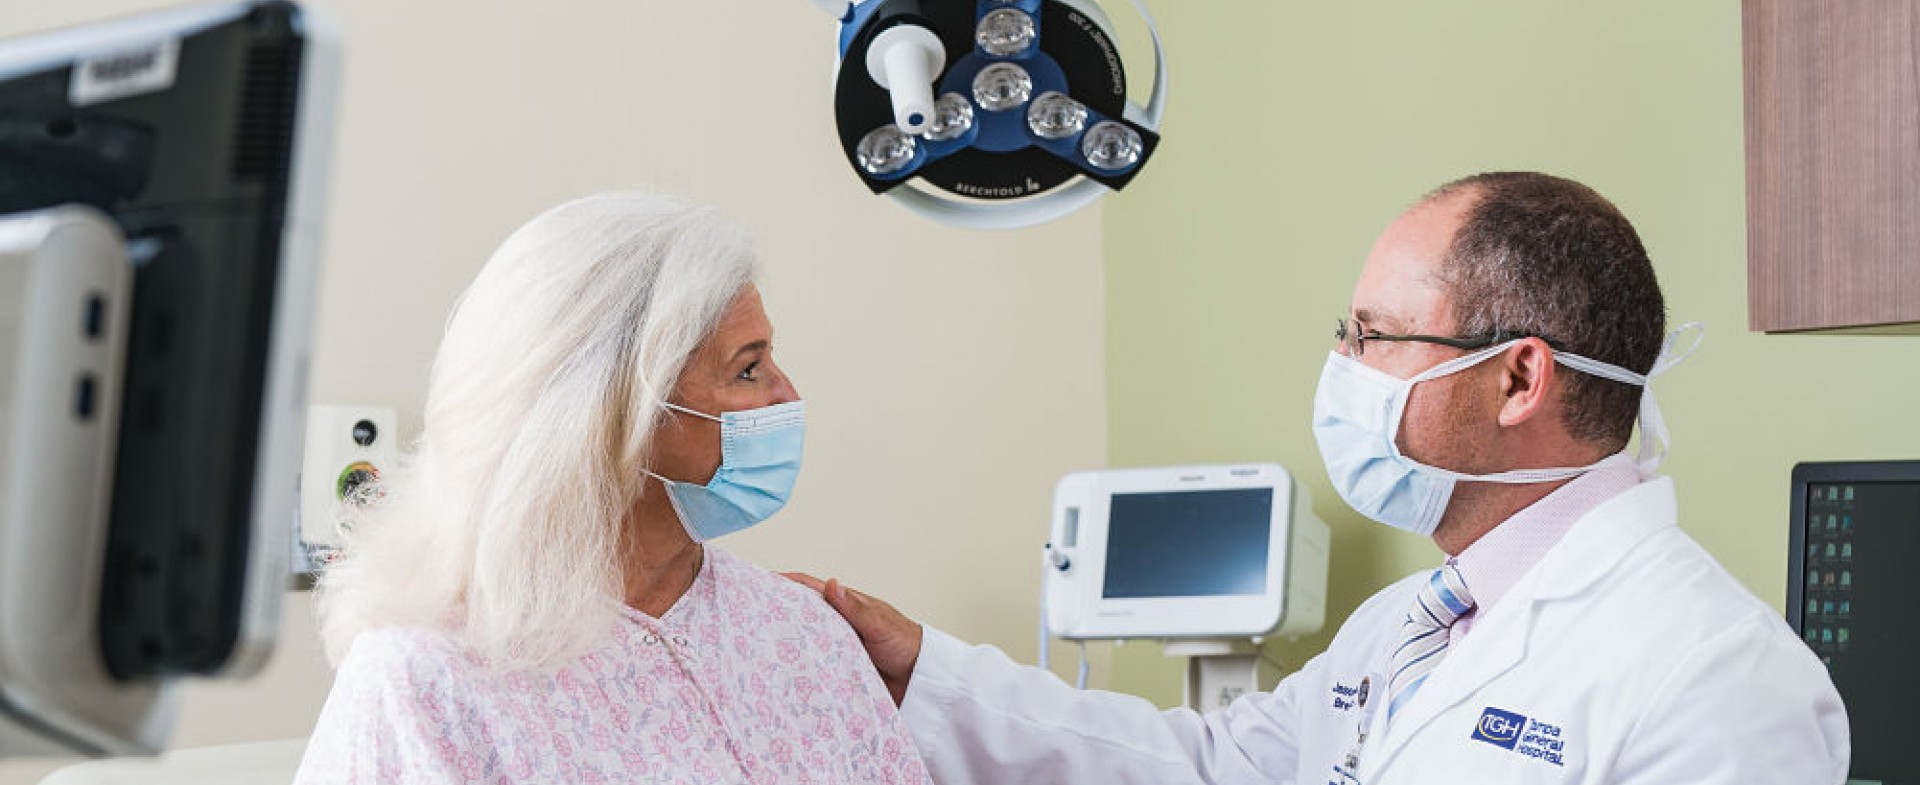 a physician consulting a patient